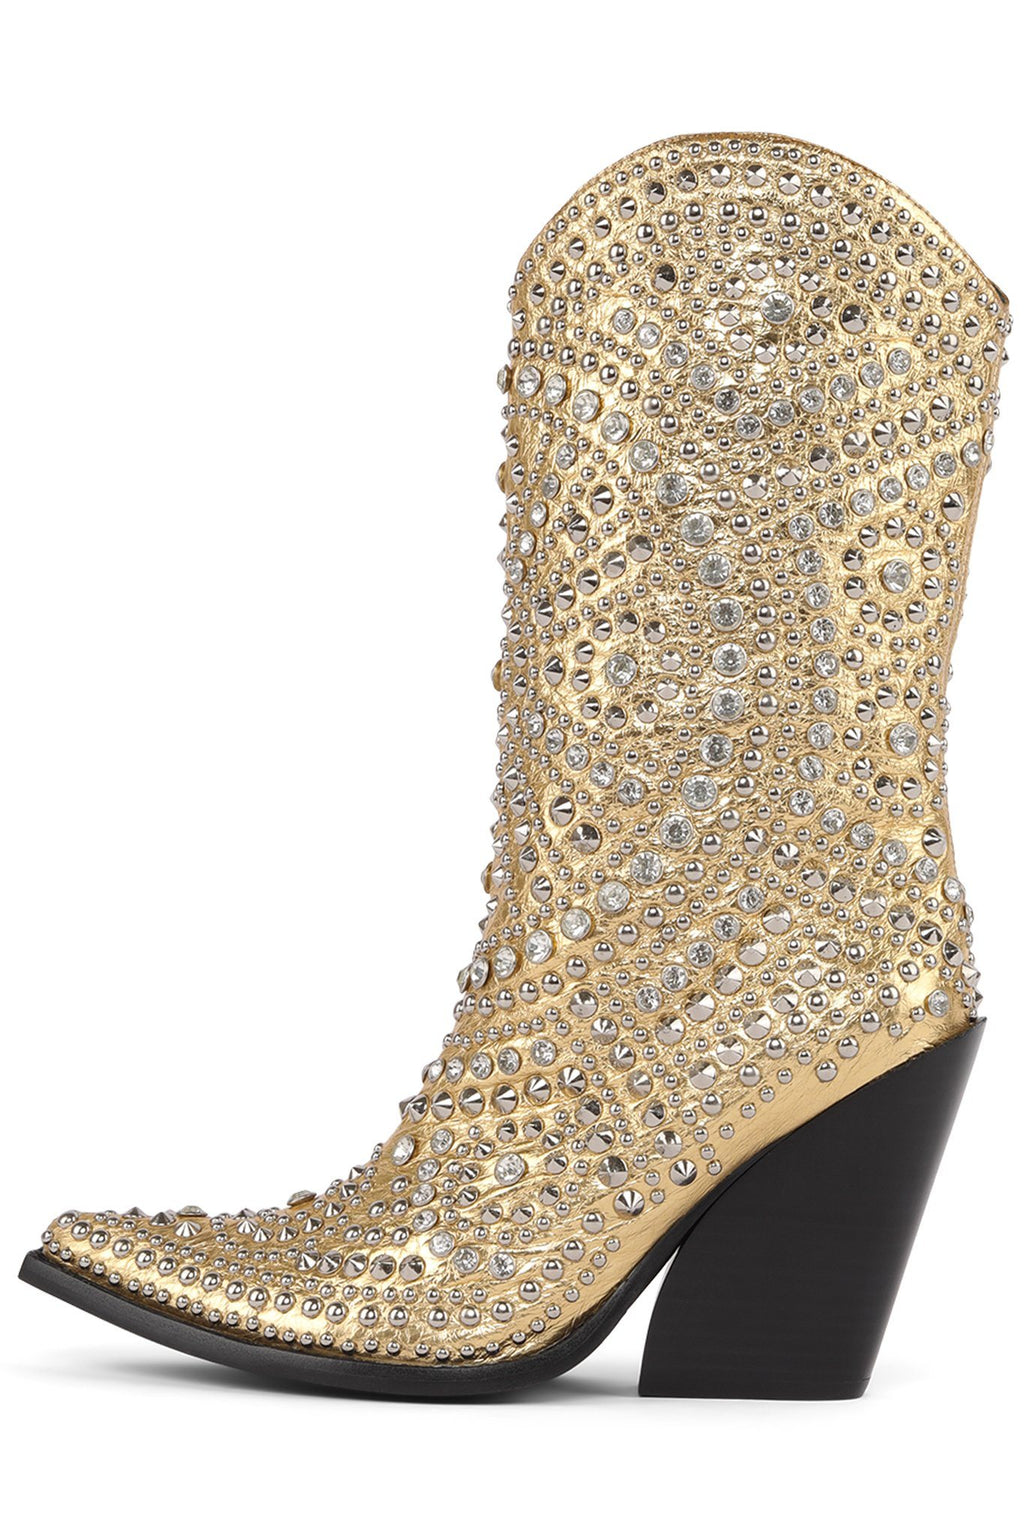 STUDLEY Mid-Calf Boot YYH Gold 6